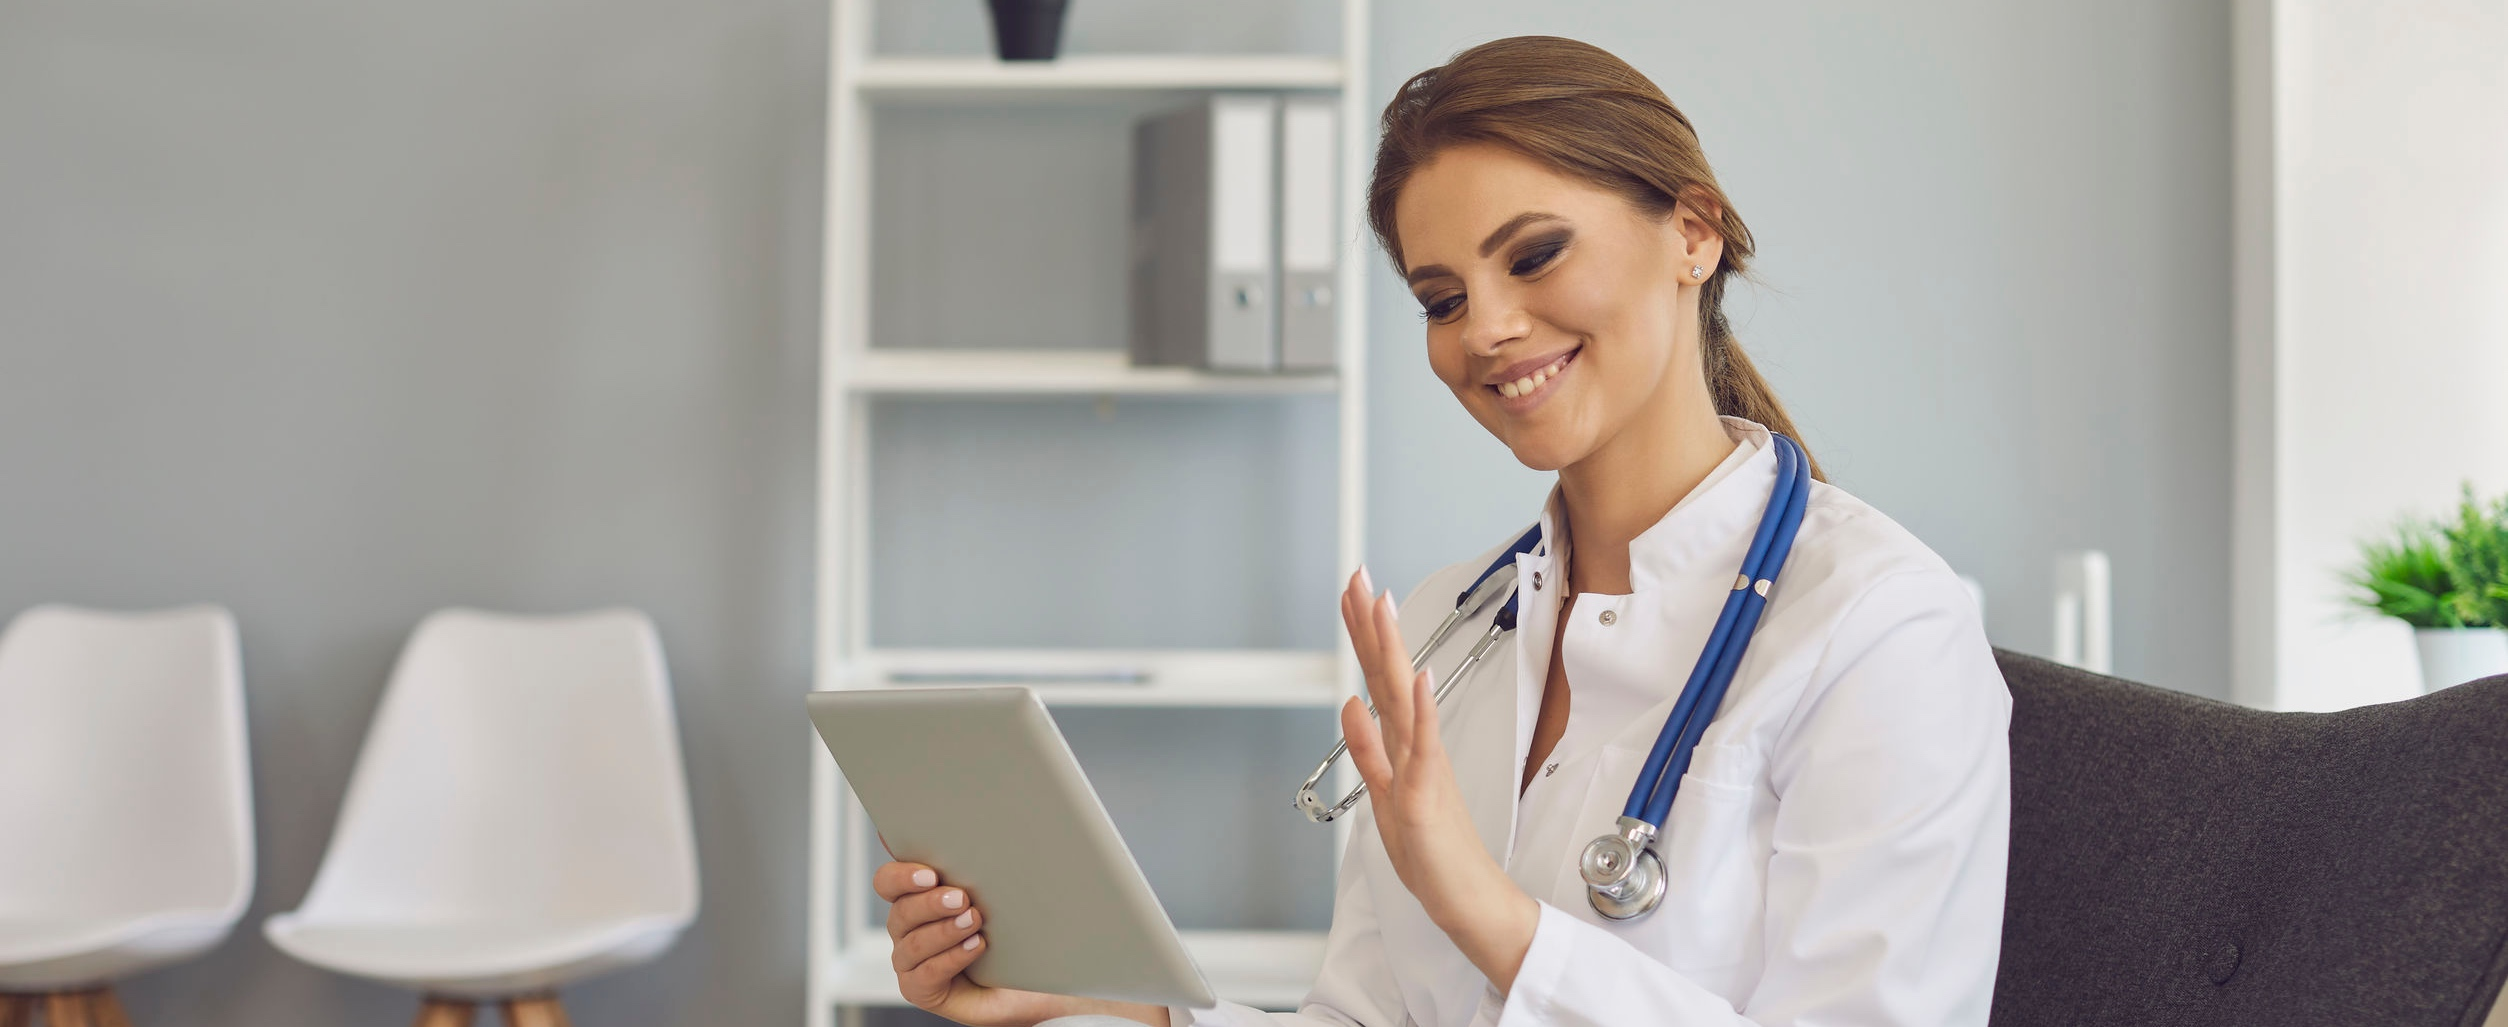 Doctor consulting with patient through tablet